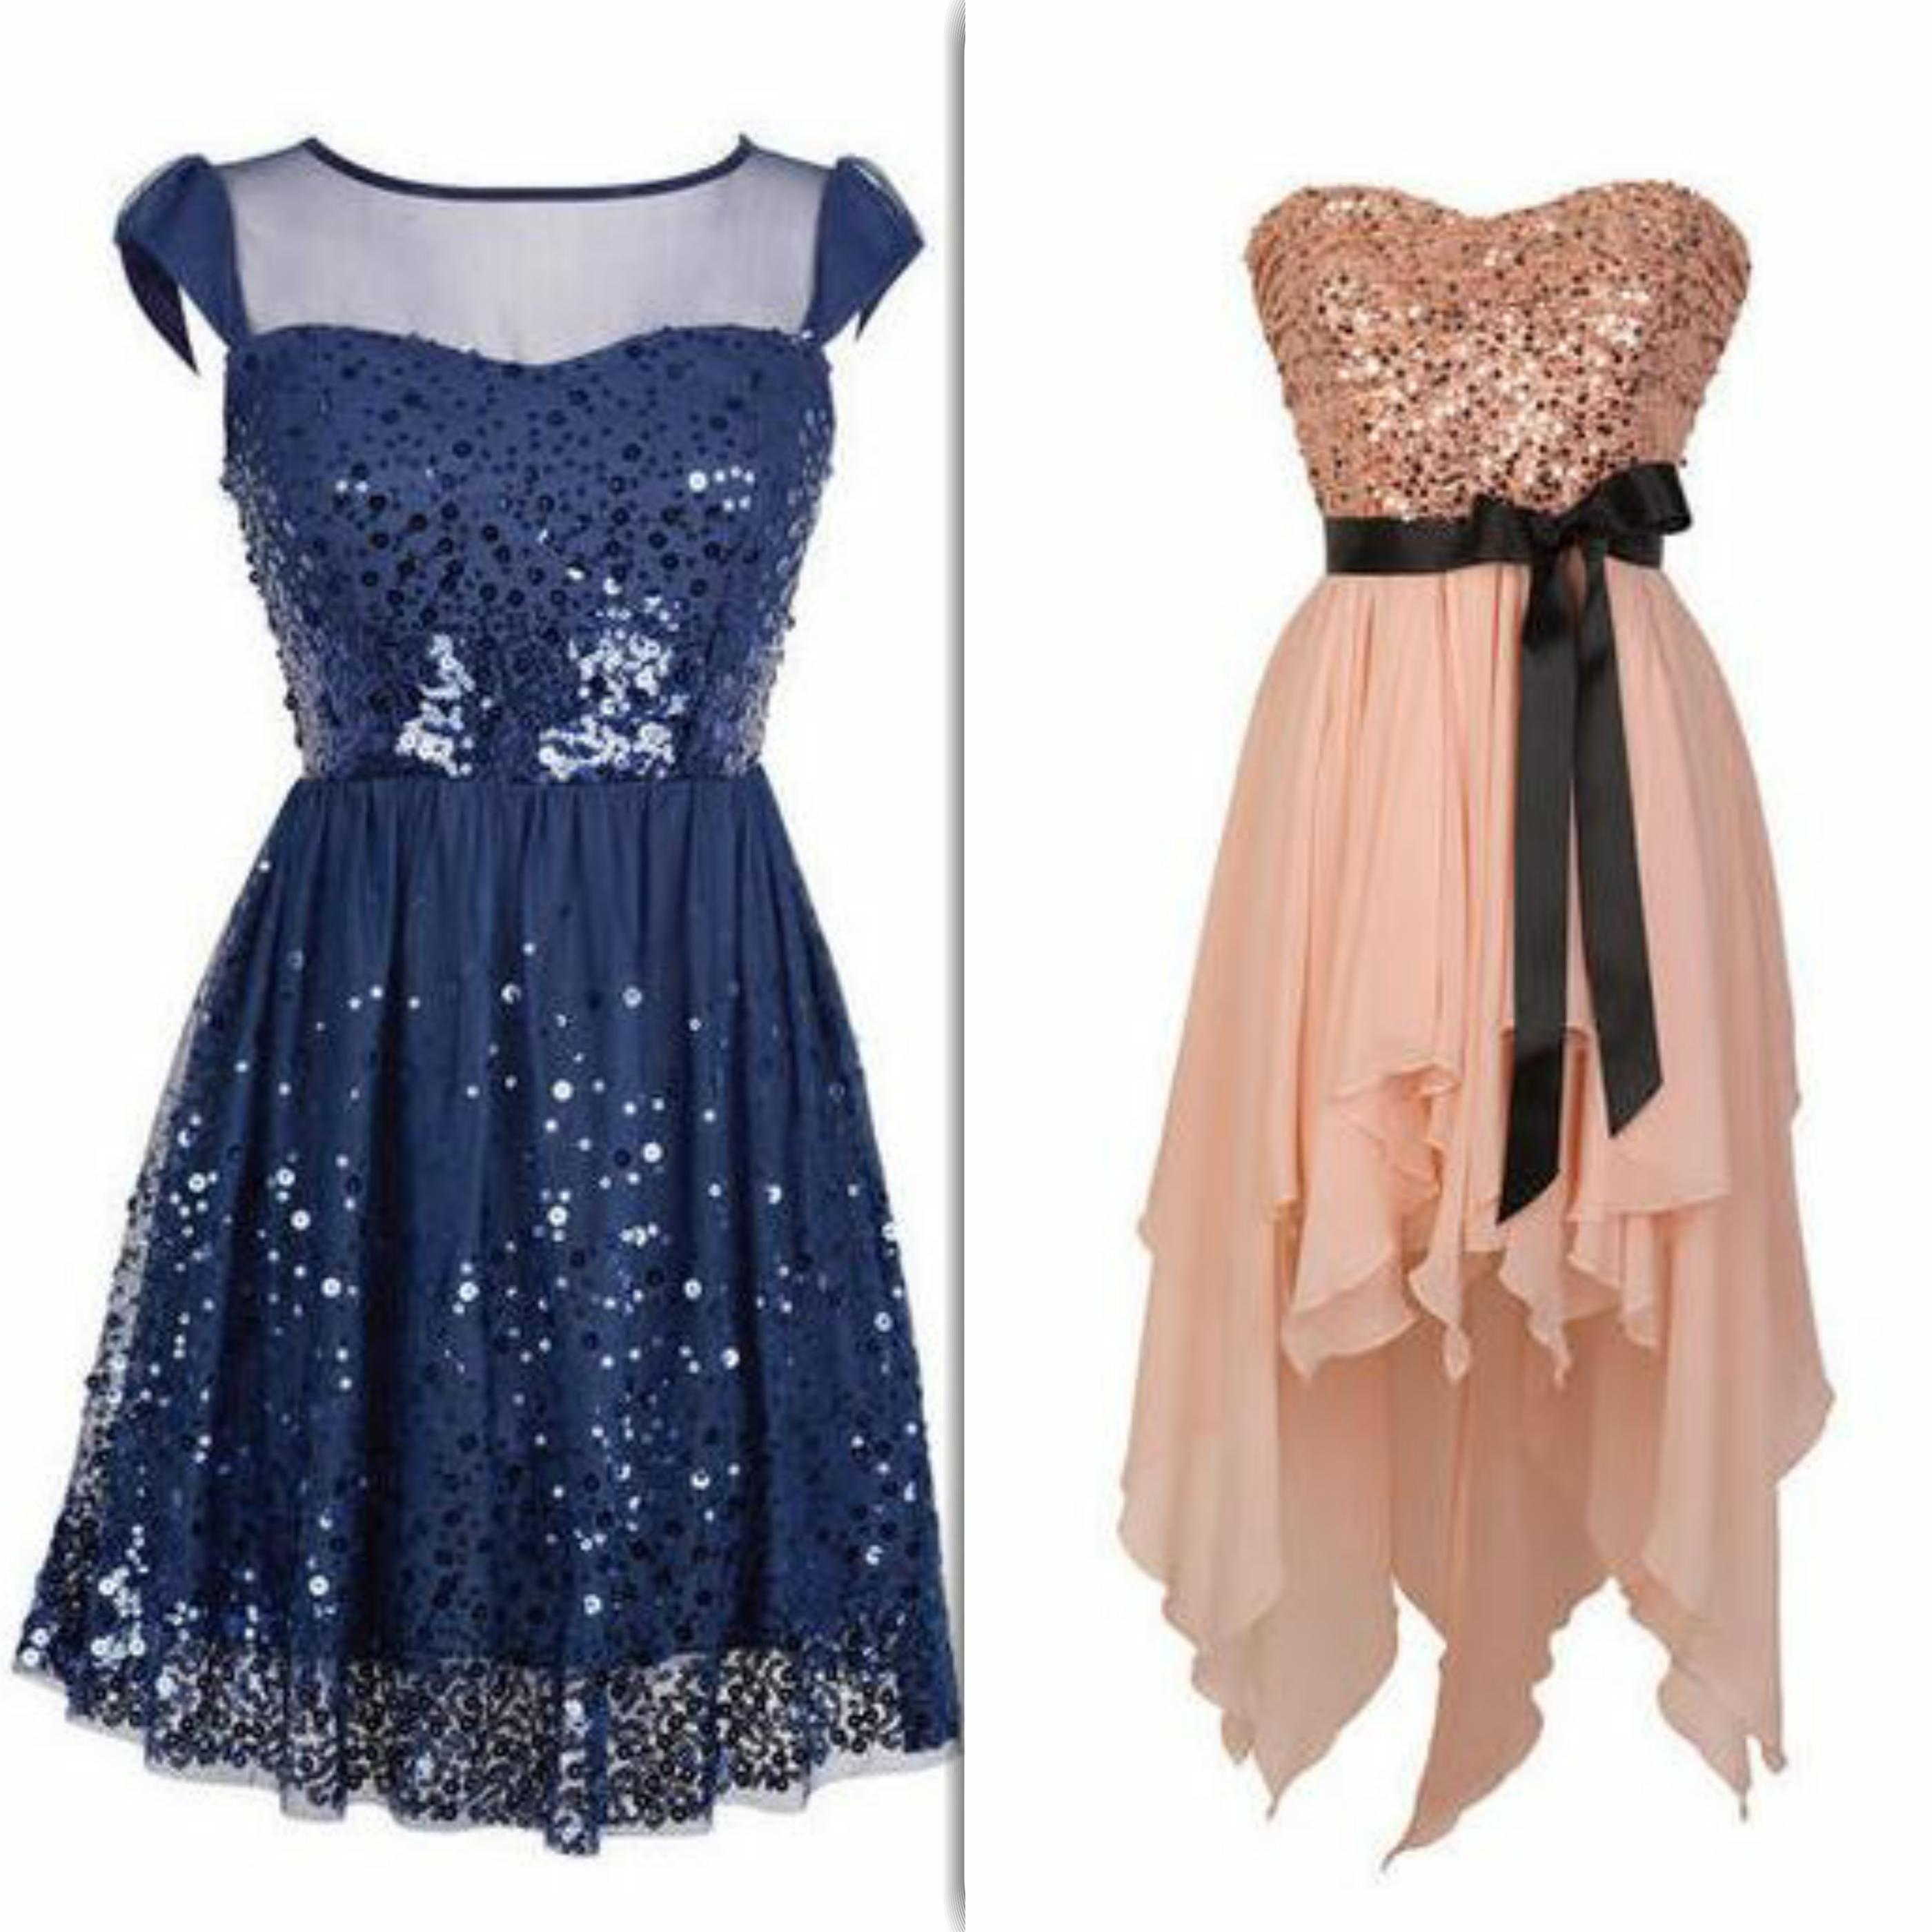 how to make simple dresses dresses